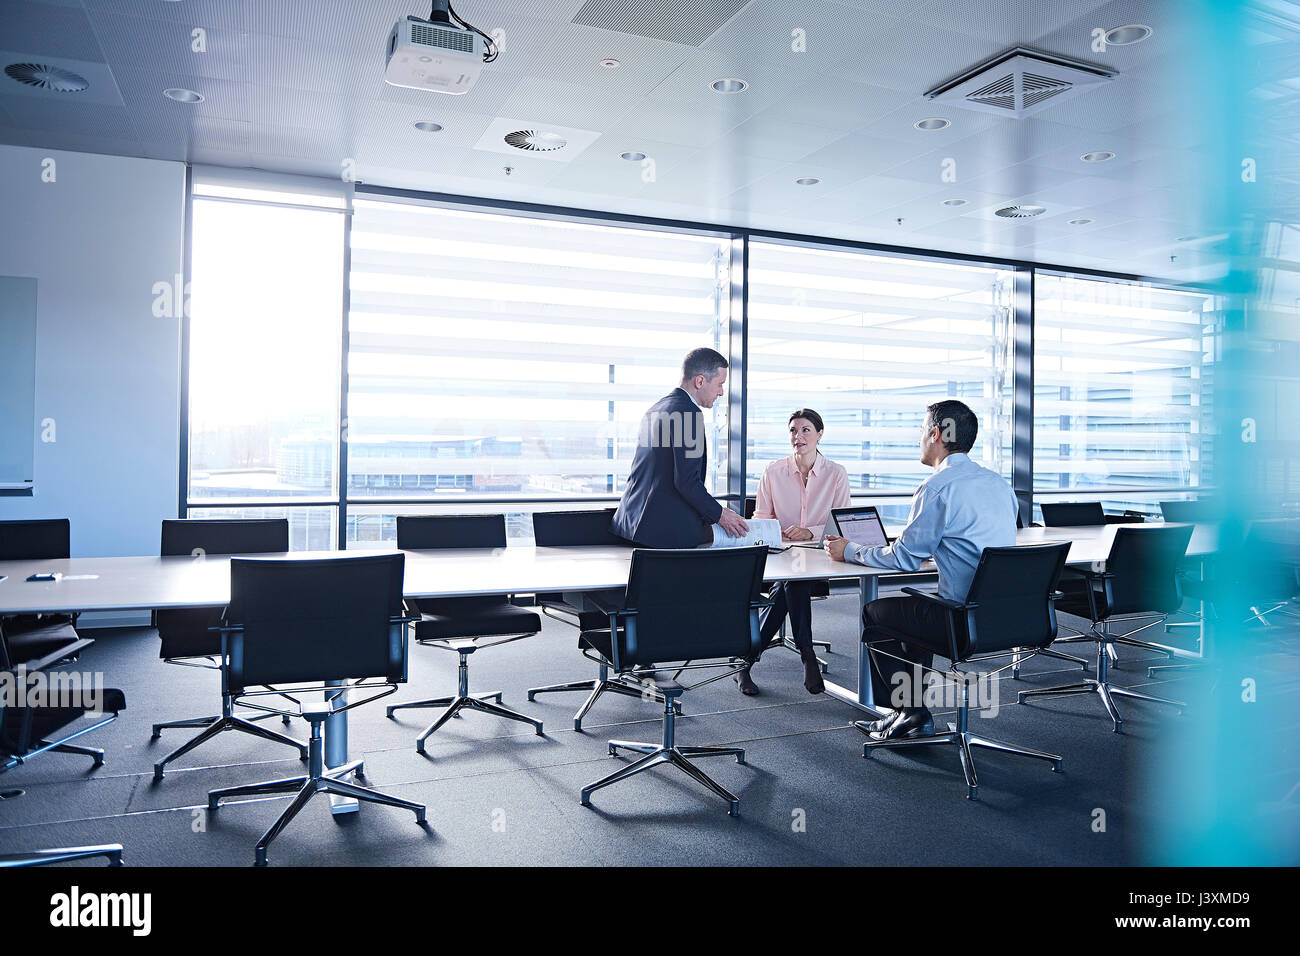 Business team meeting at boardroom table - Stock Image